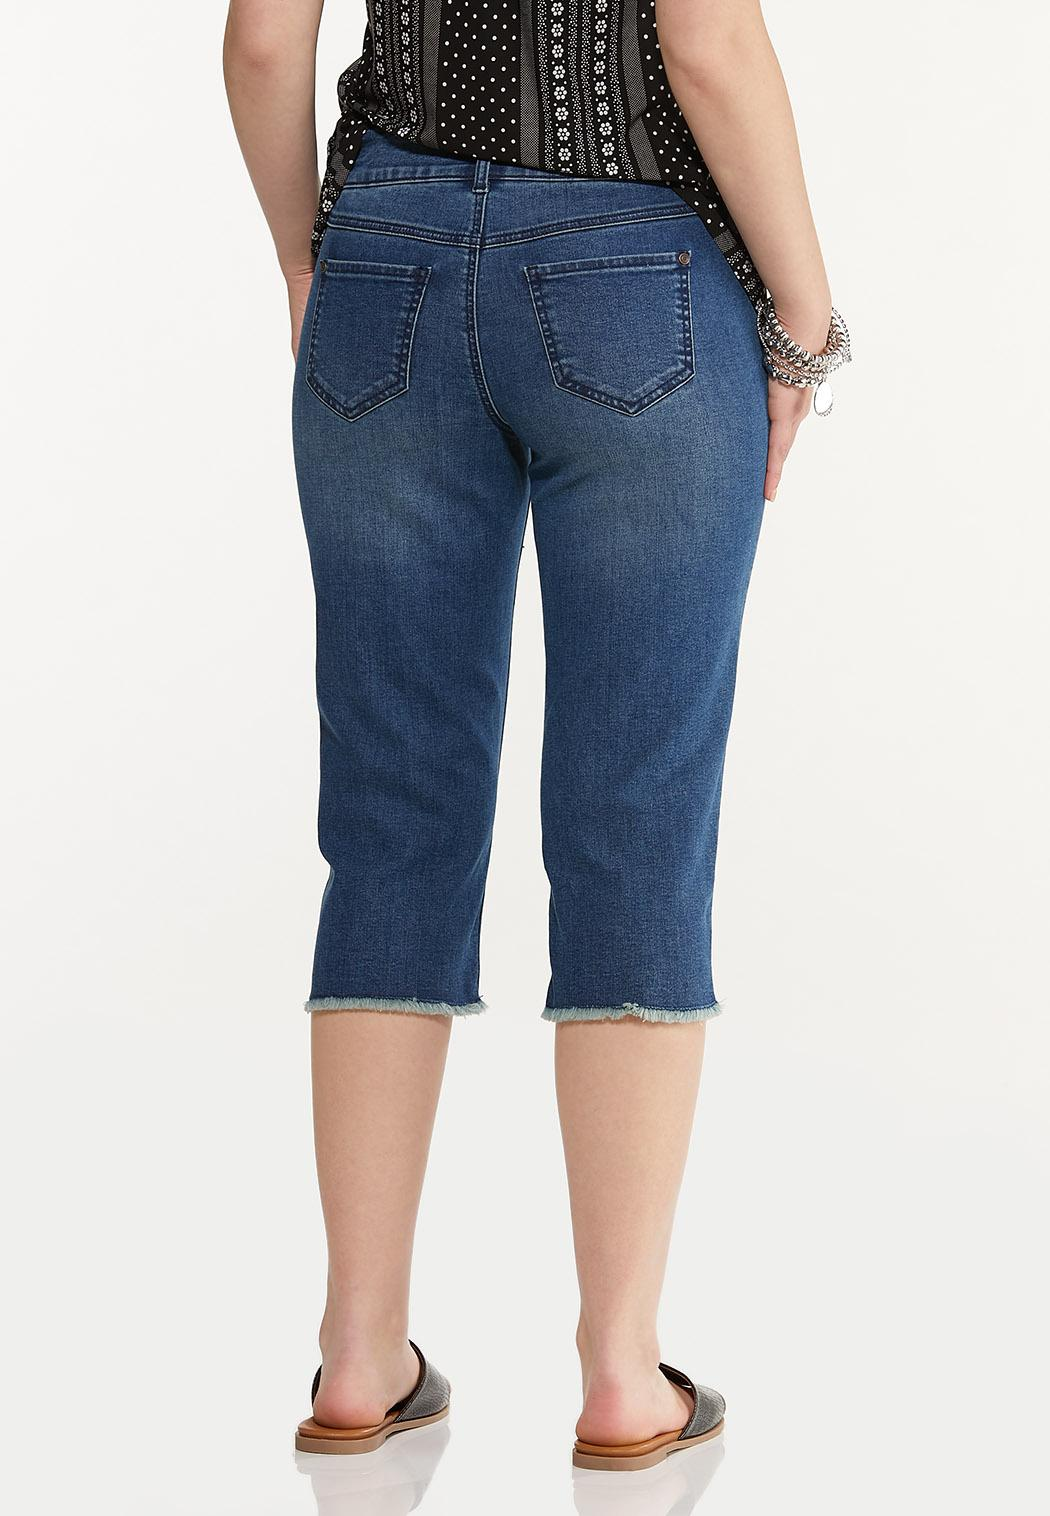 Cropped Frayed Jeans (Item #44587521)